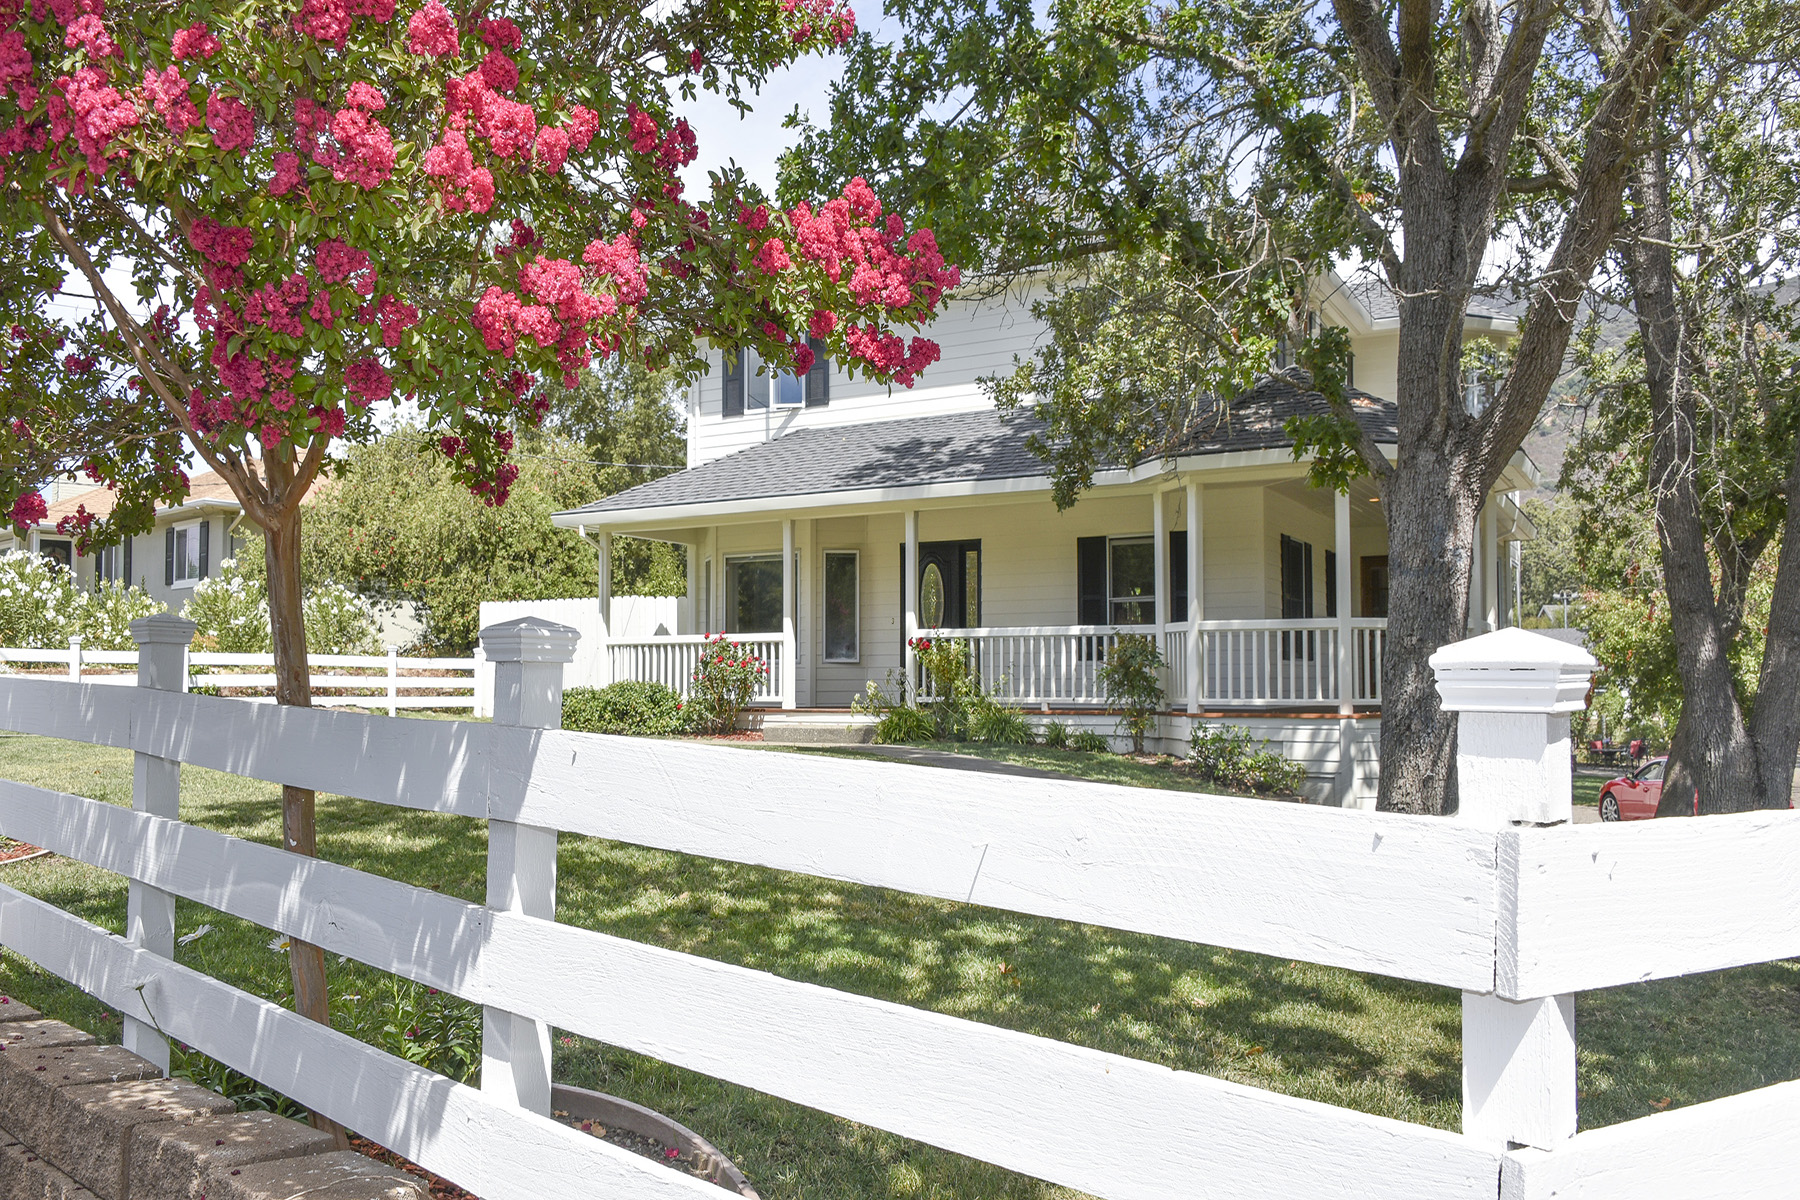 Single Family Home for Sale at 1202 Olive Hill Ln, Napa, CA 94558 1202 Olive Hill Ln Napa, California, 94558 United States